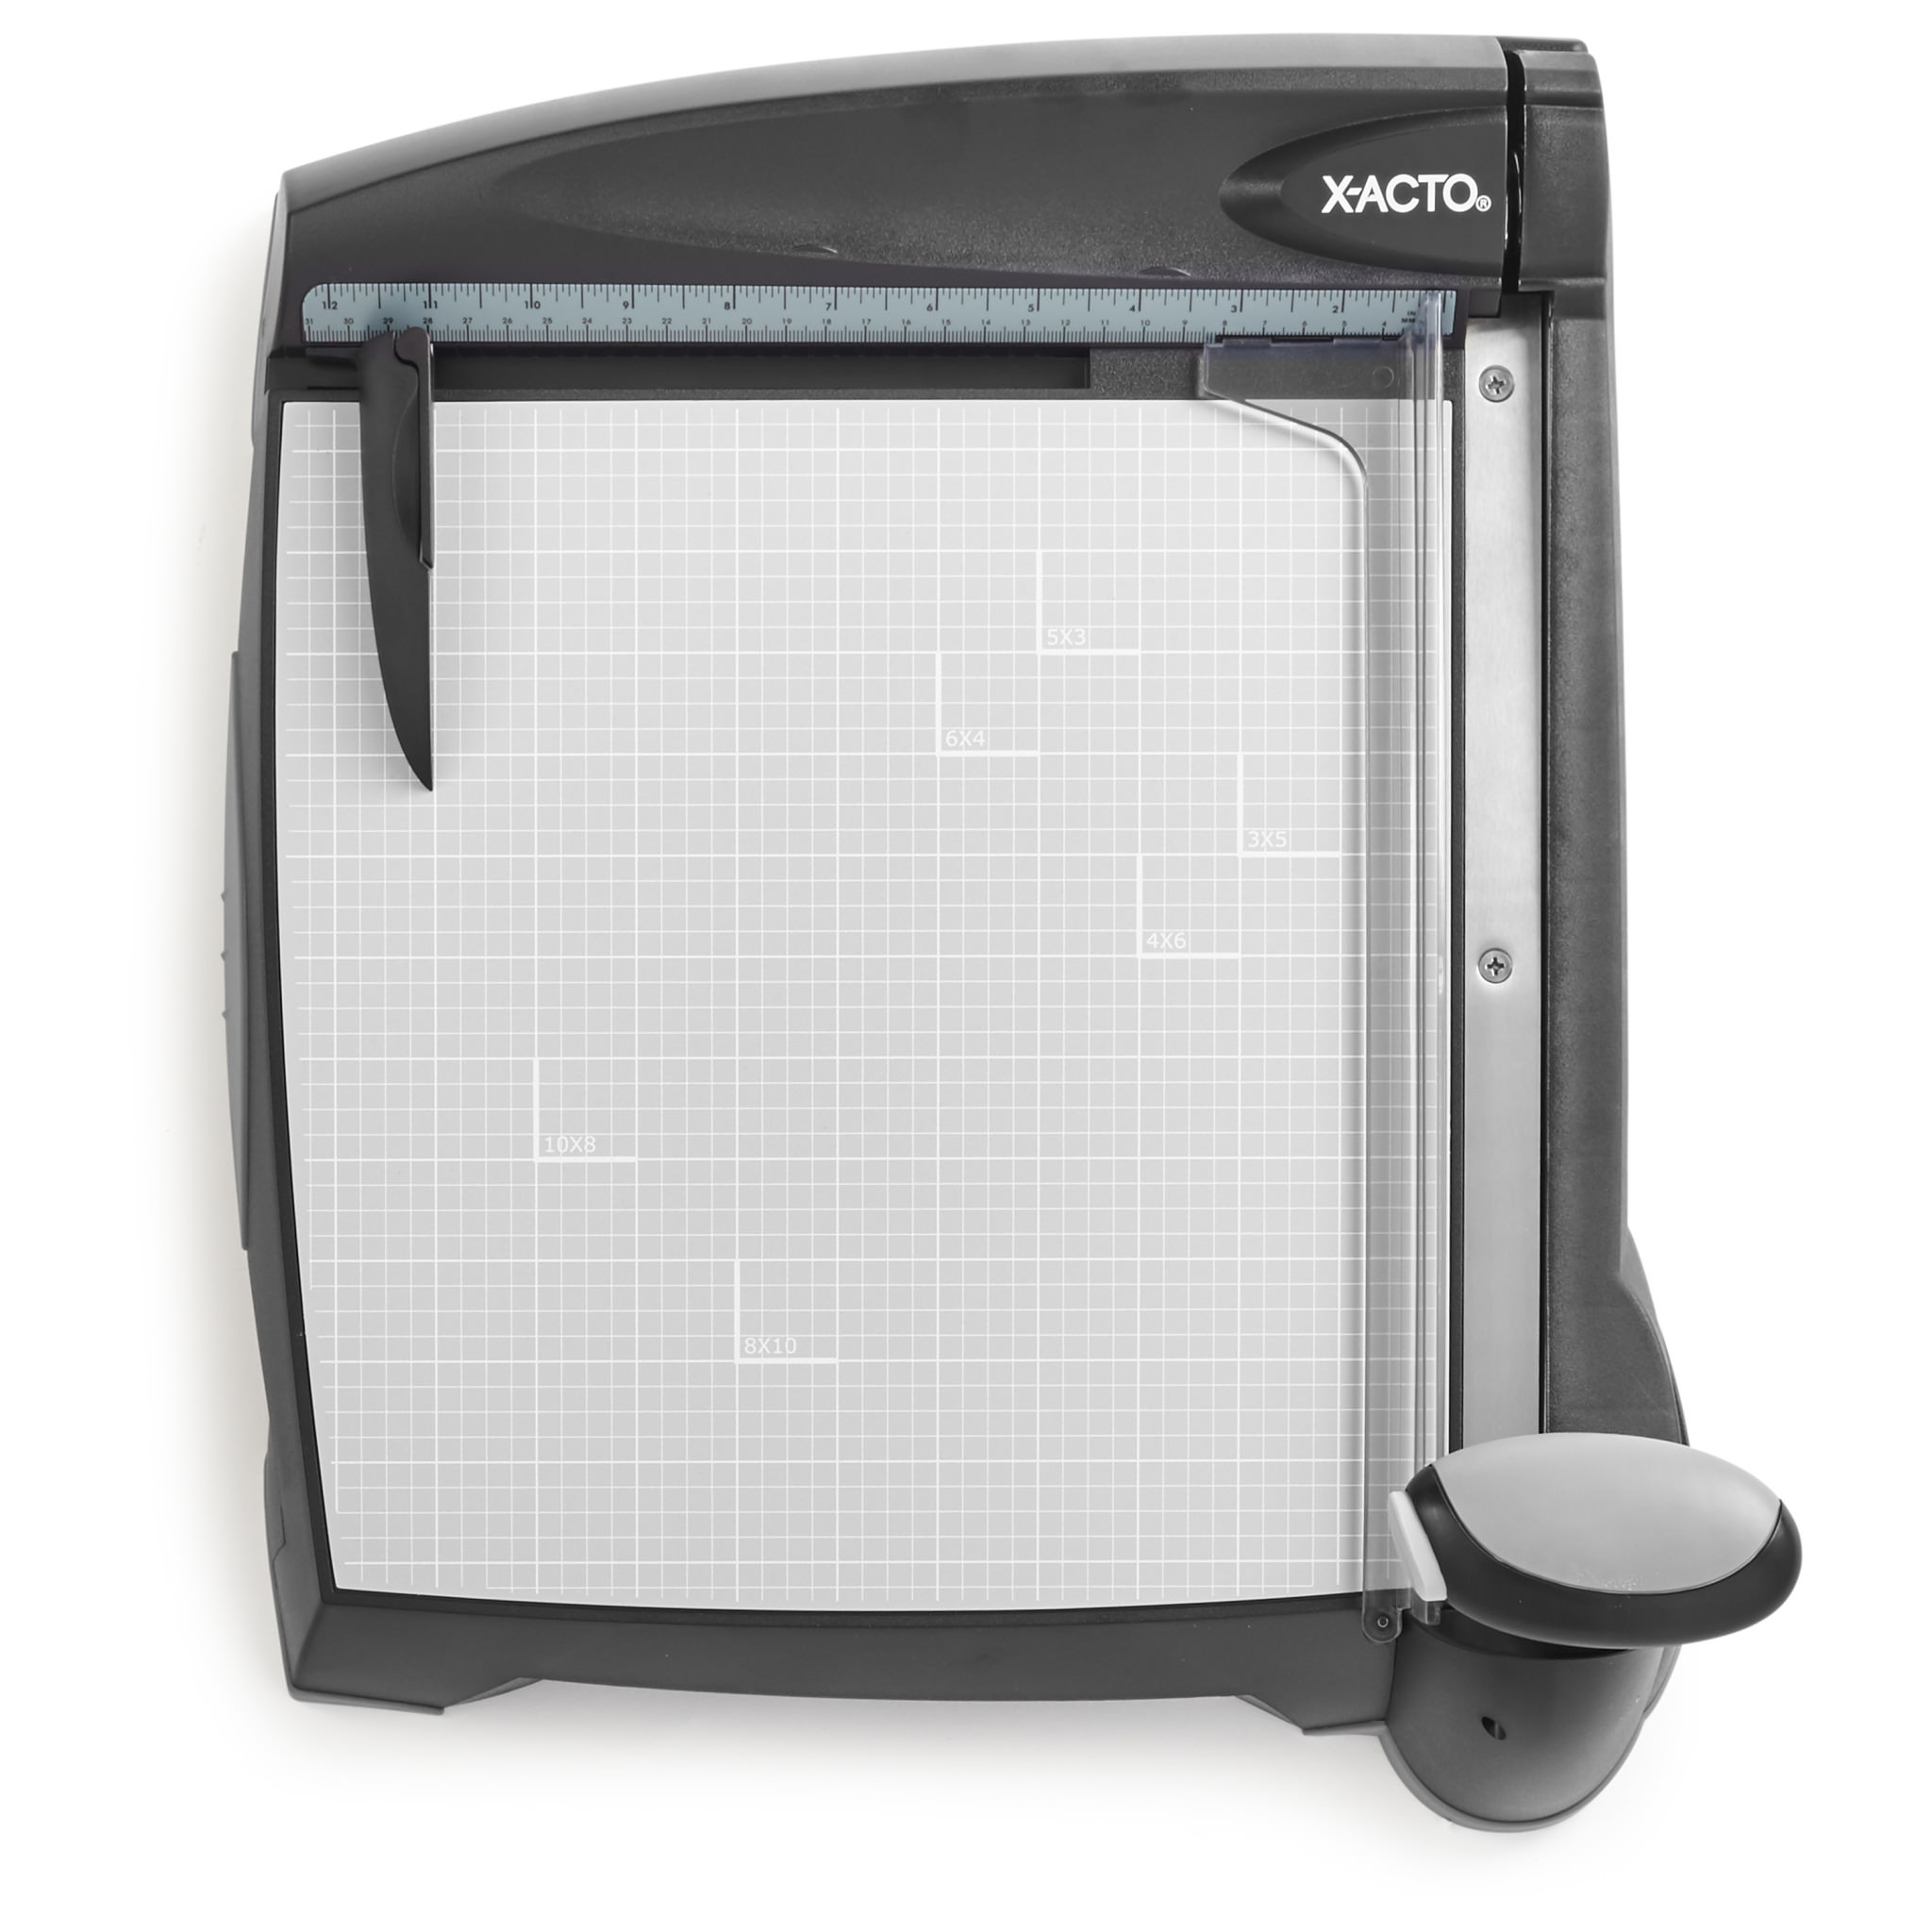 """""""X-Acto Laser Guillotine Trimmer, 12 Sheets, Plastic Base, 12"""""""" x 12"""""""""""""""